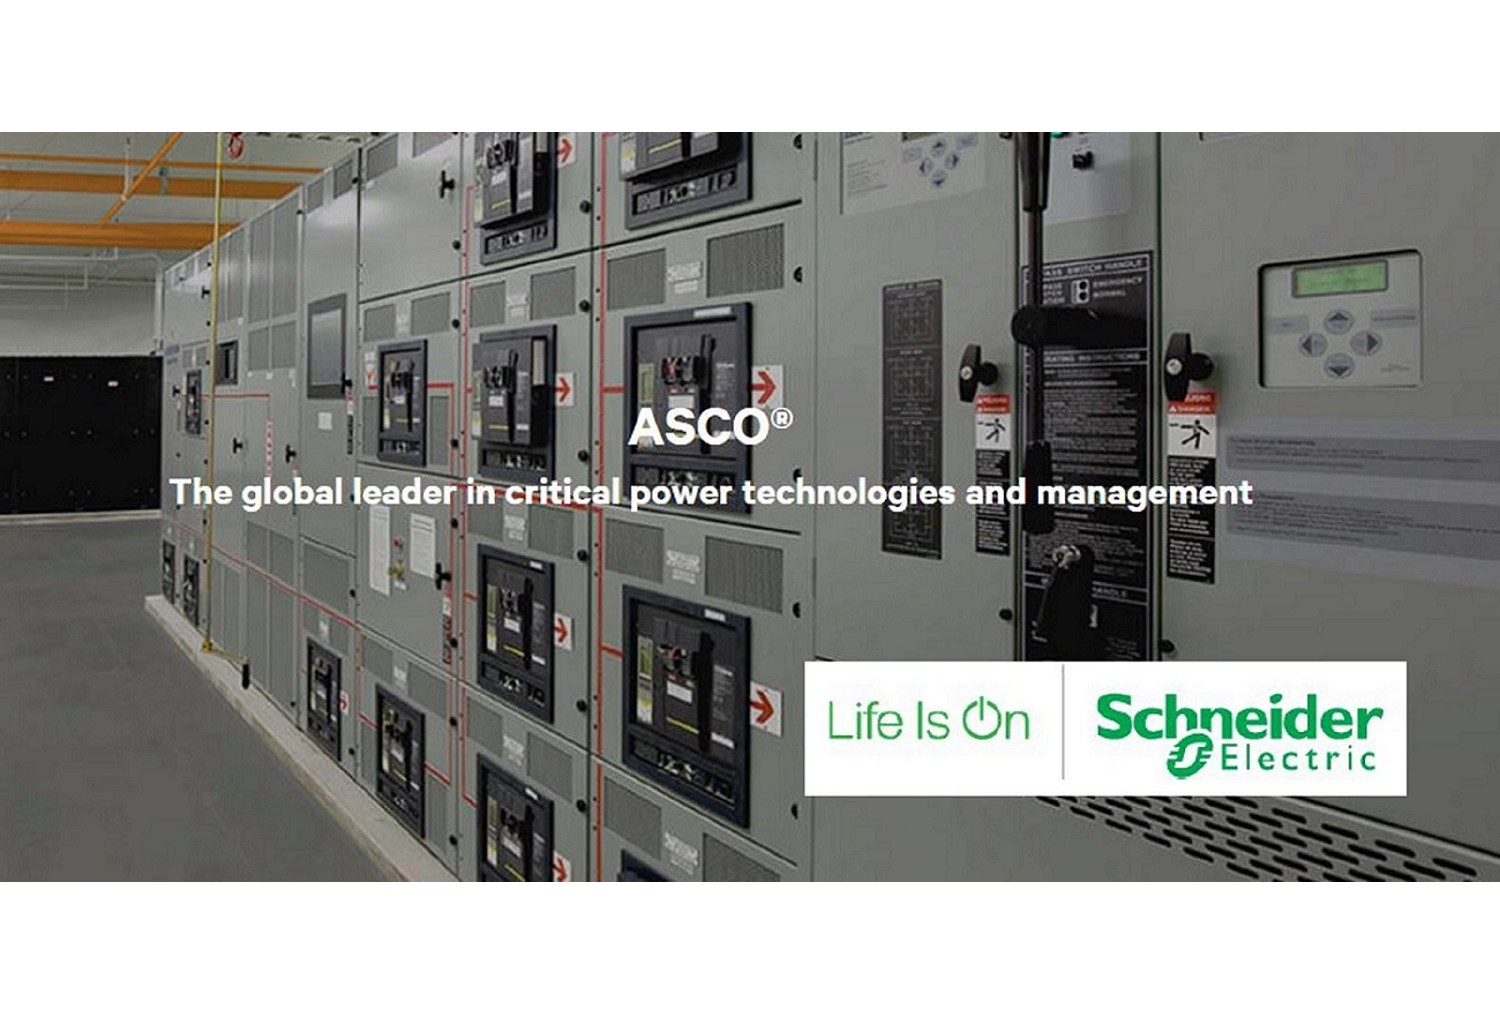 Schneider Electric renforce sa position sur son coeur de métier en basse tension avec l'acquisition d'ASCO Power Technologies